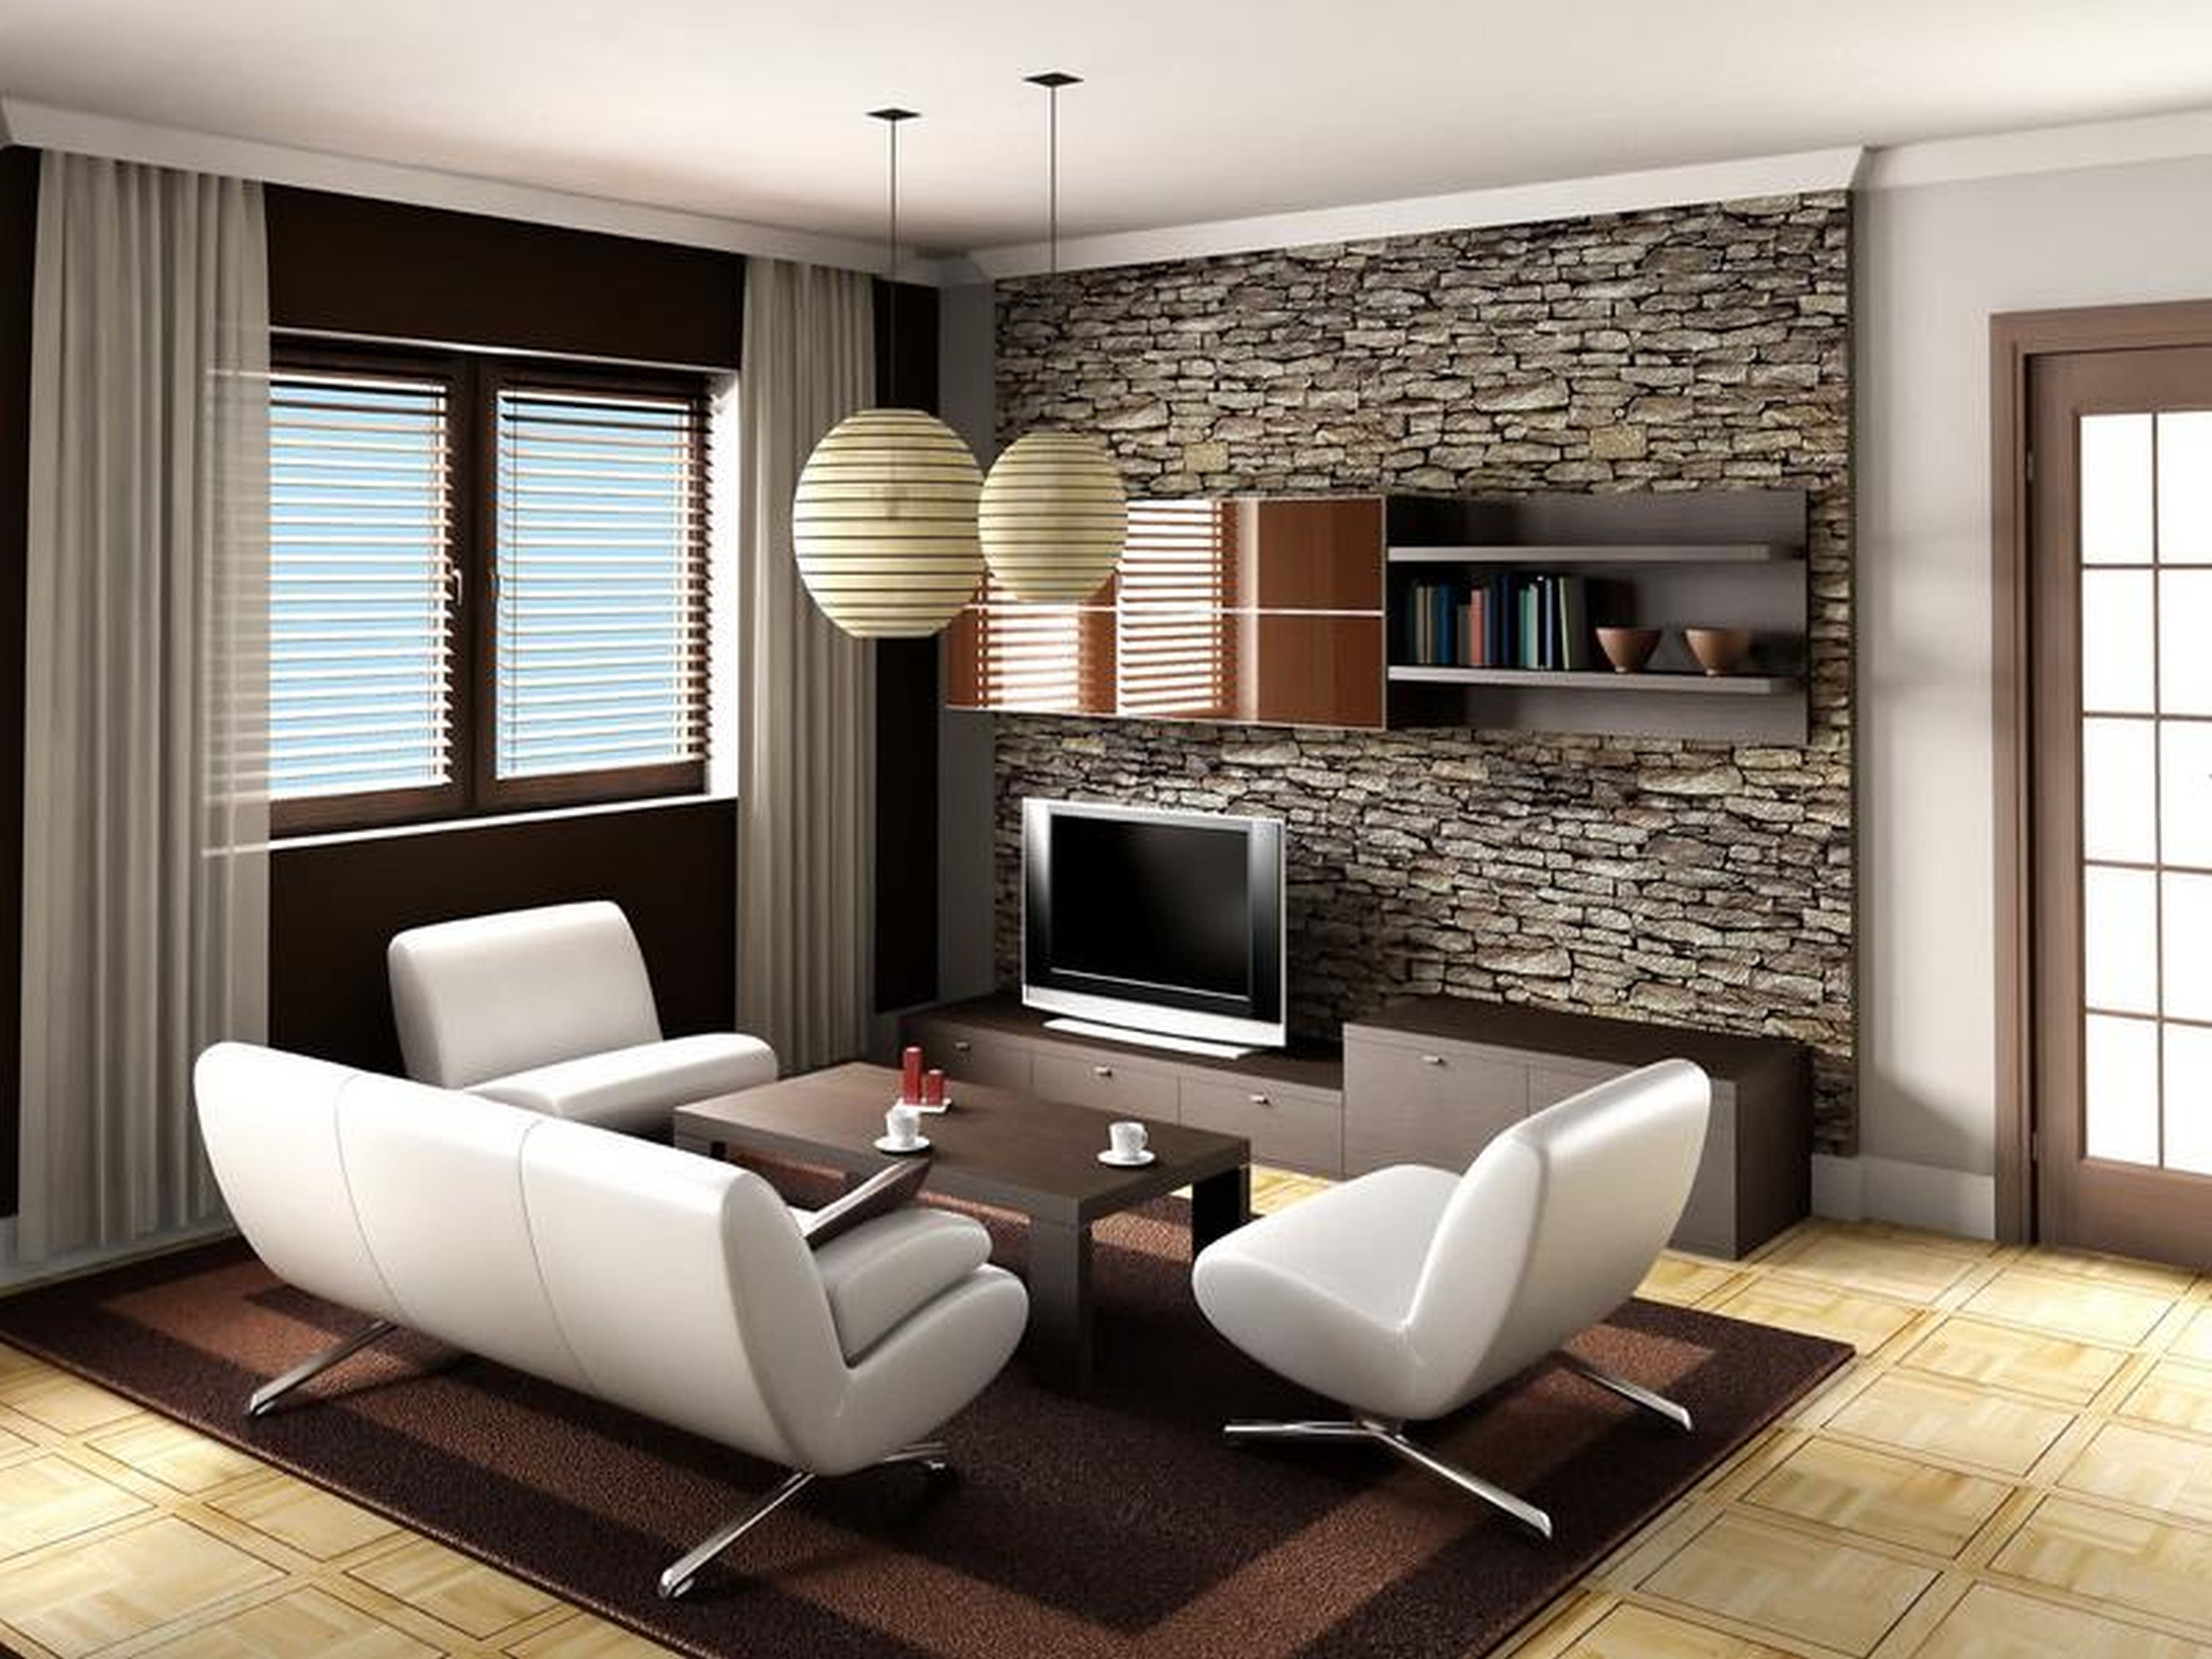 a living room design livingroom : Splendid Duplex House Interior Designs Living Room  720 X 1280